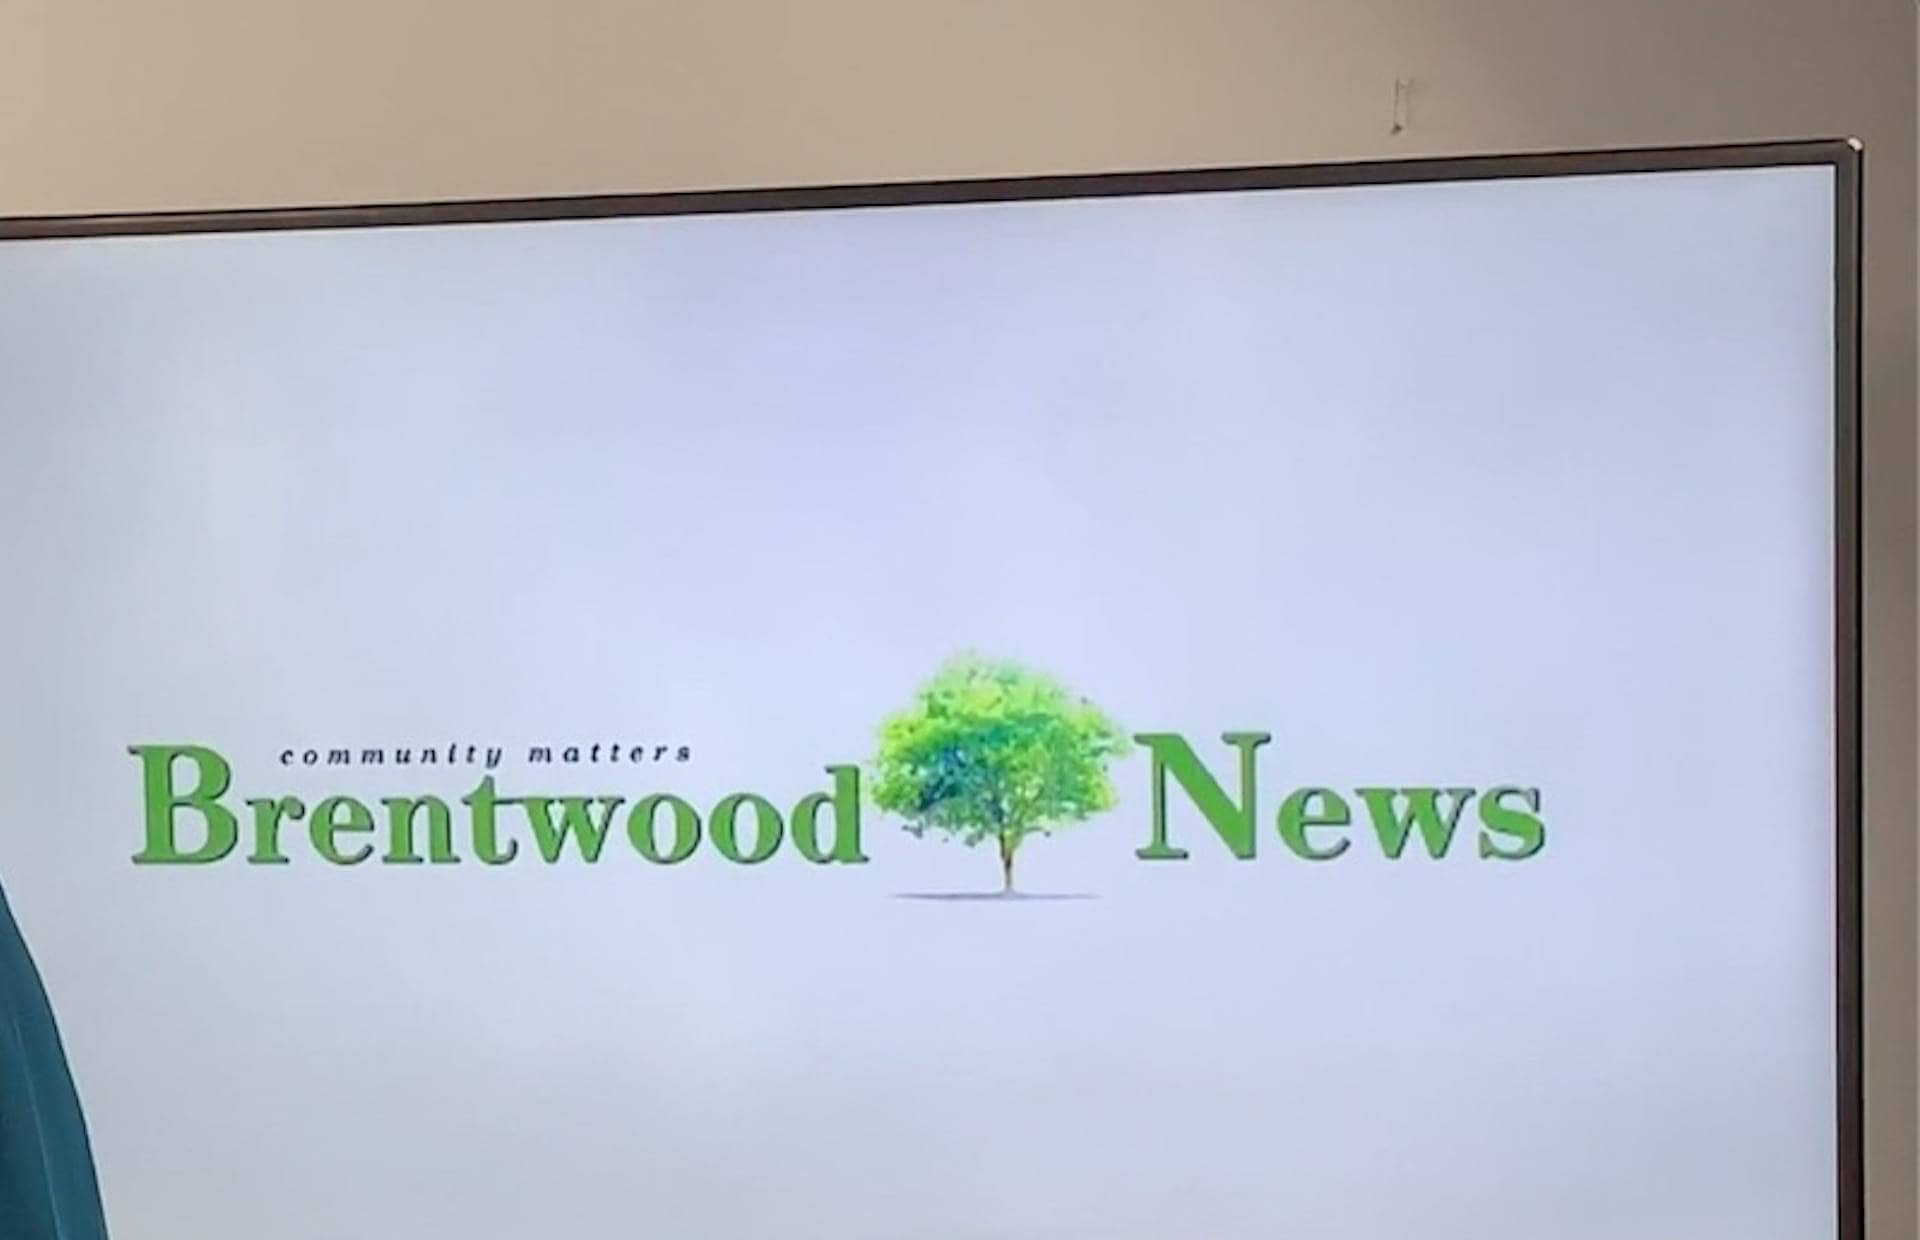 Brentwood News (Upcoming)